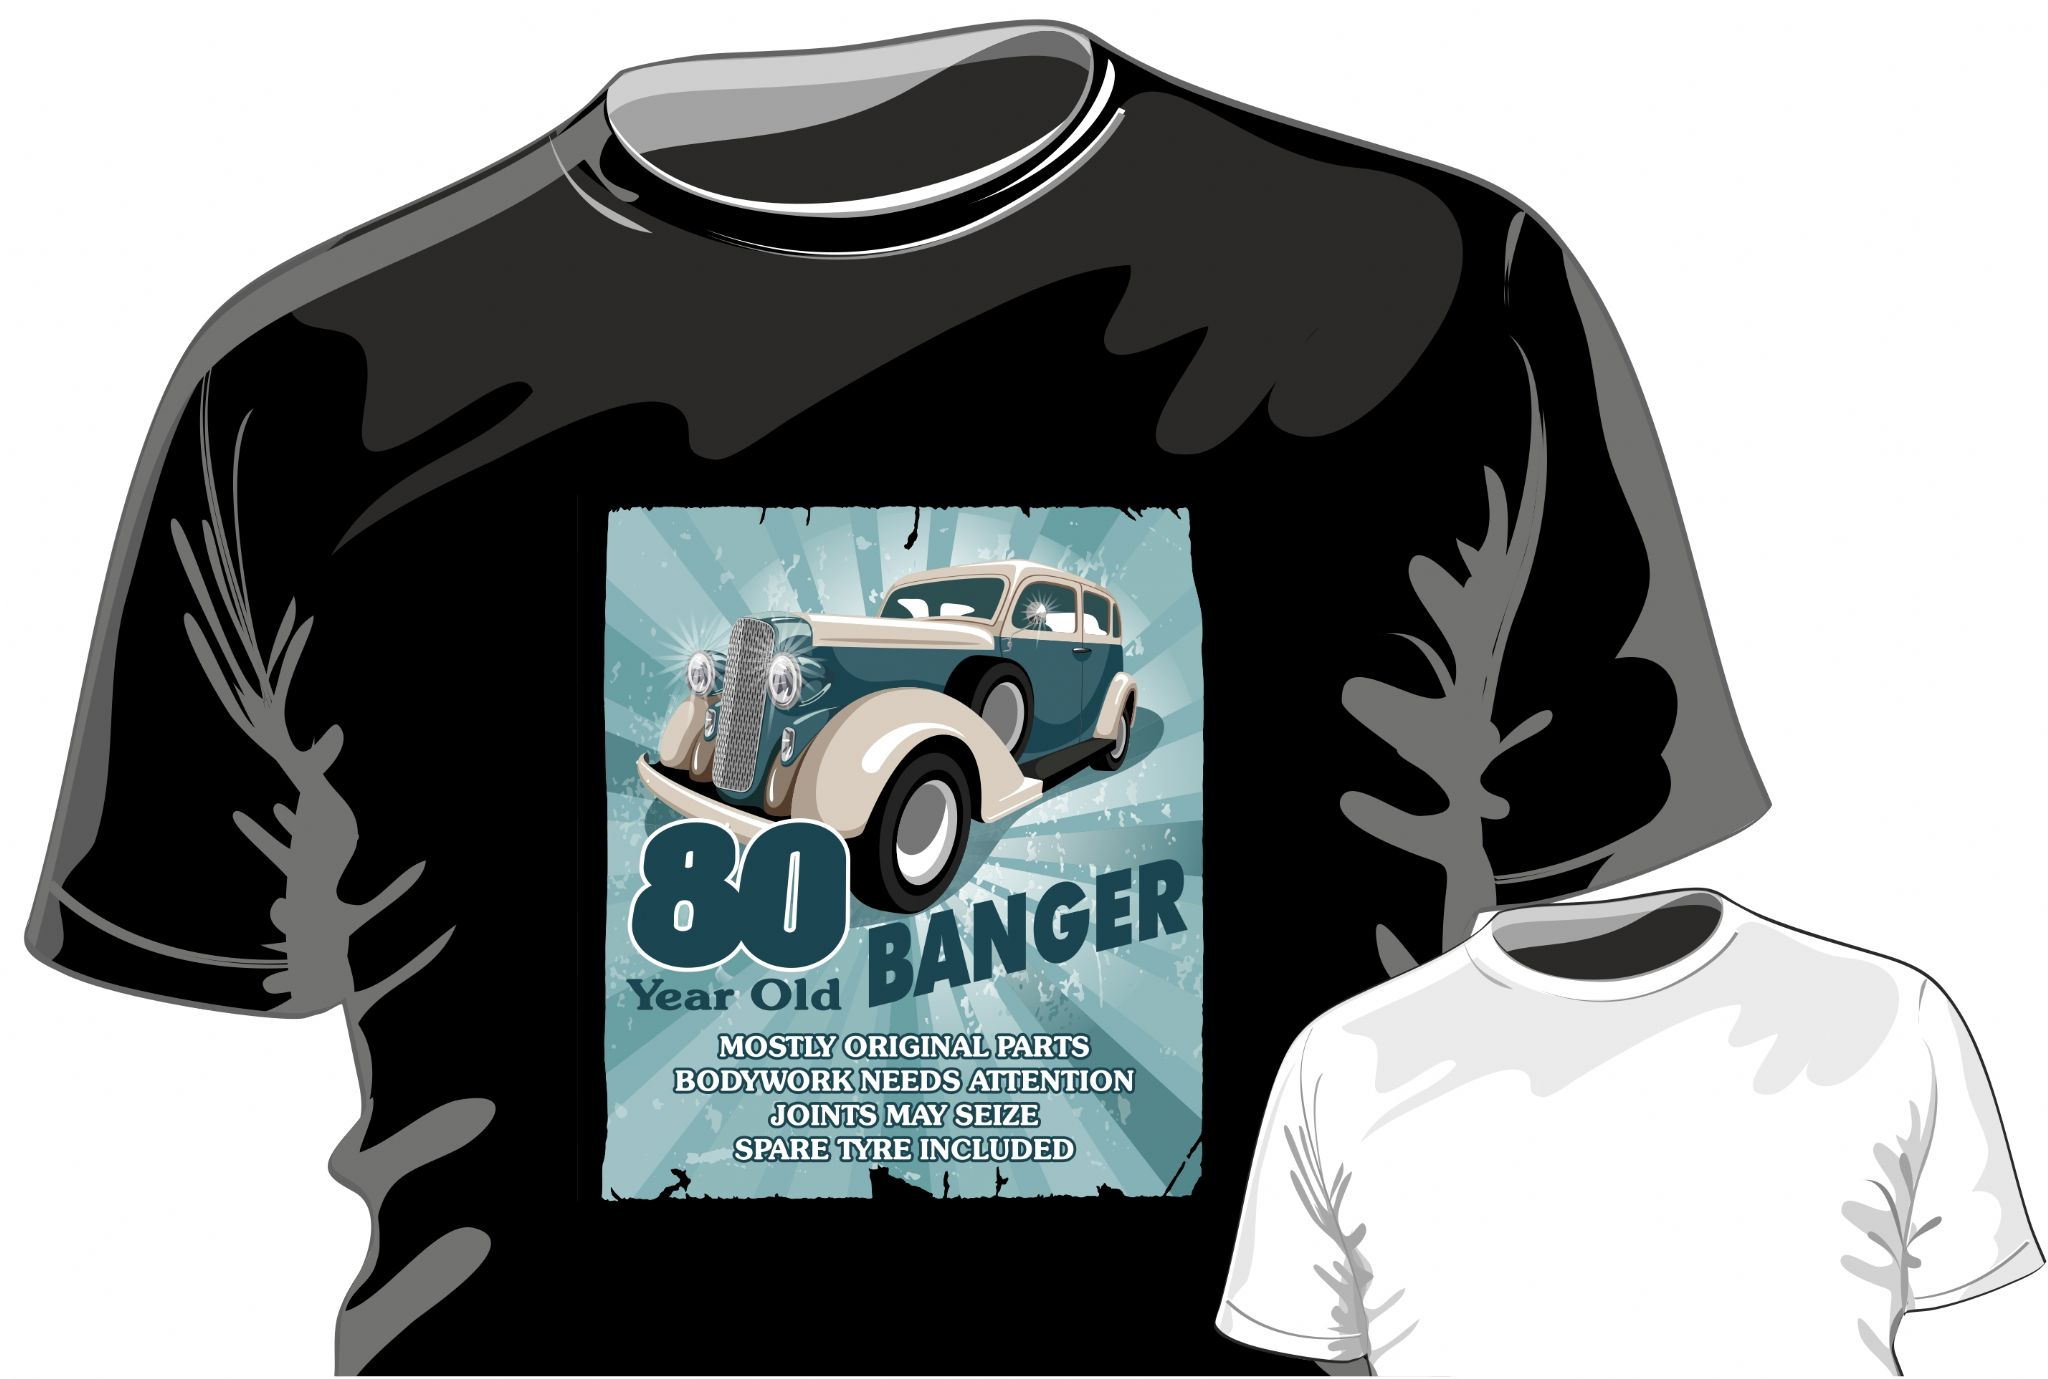 Funny 80 Year Old Banger Retro Car Motif For 80th Birthday Occasion Anniversary Gift Mens Or Ladyfit T Shirt 11757 P